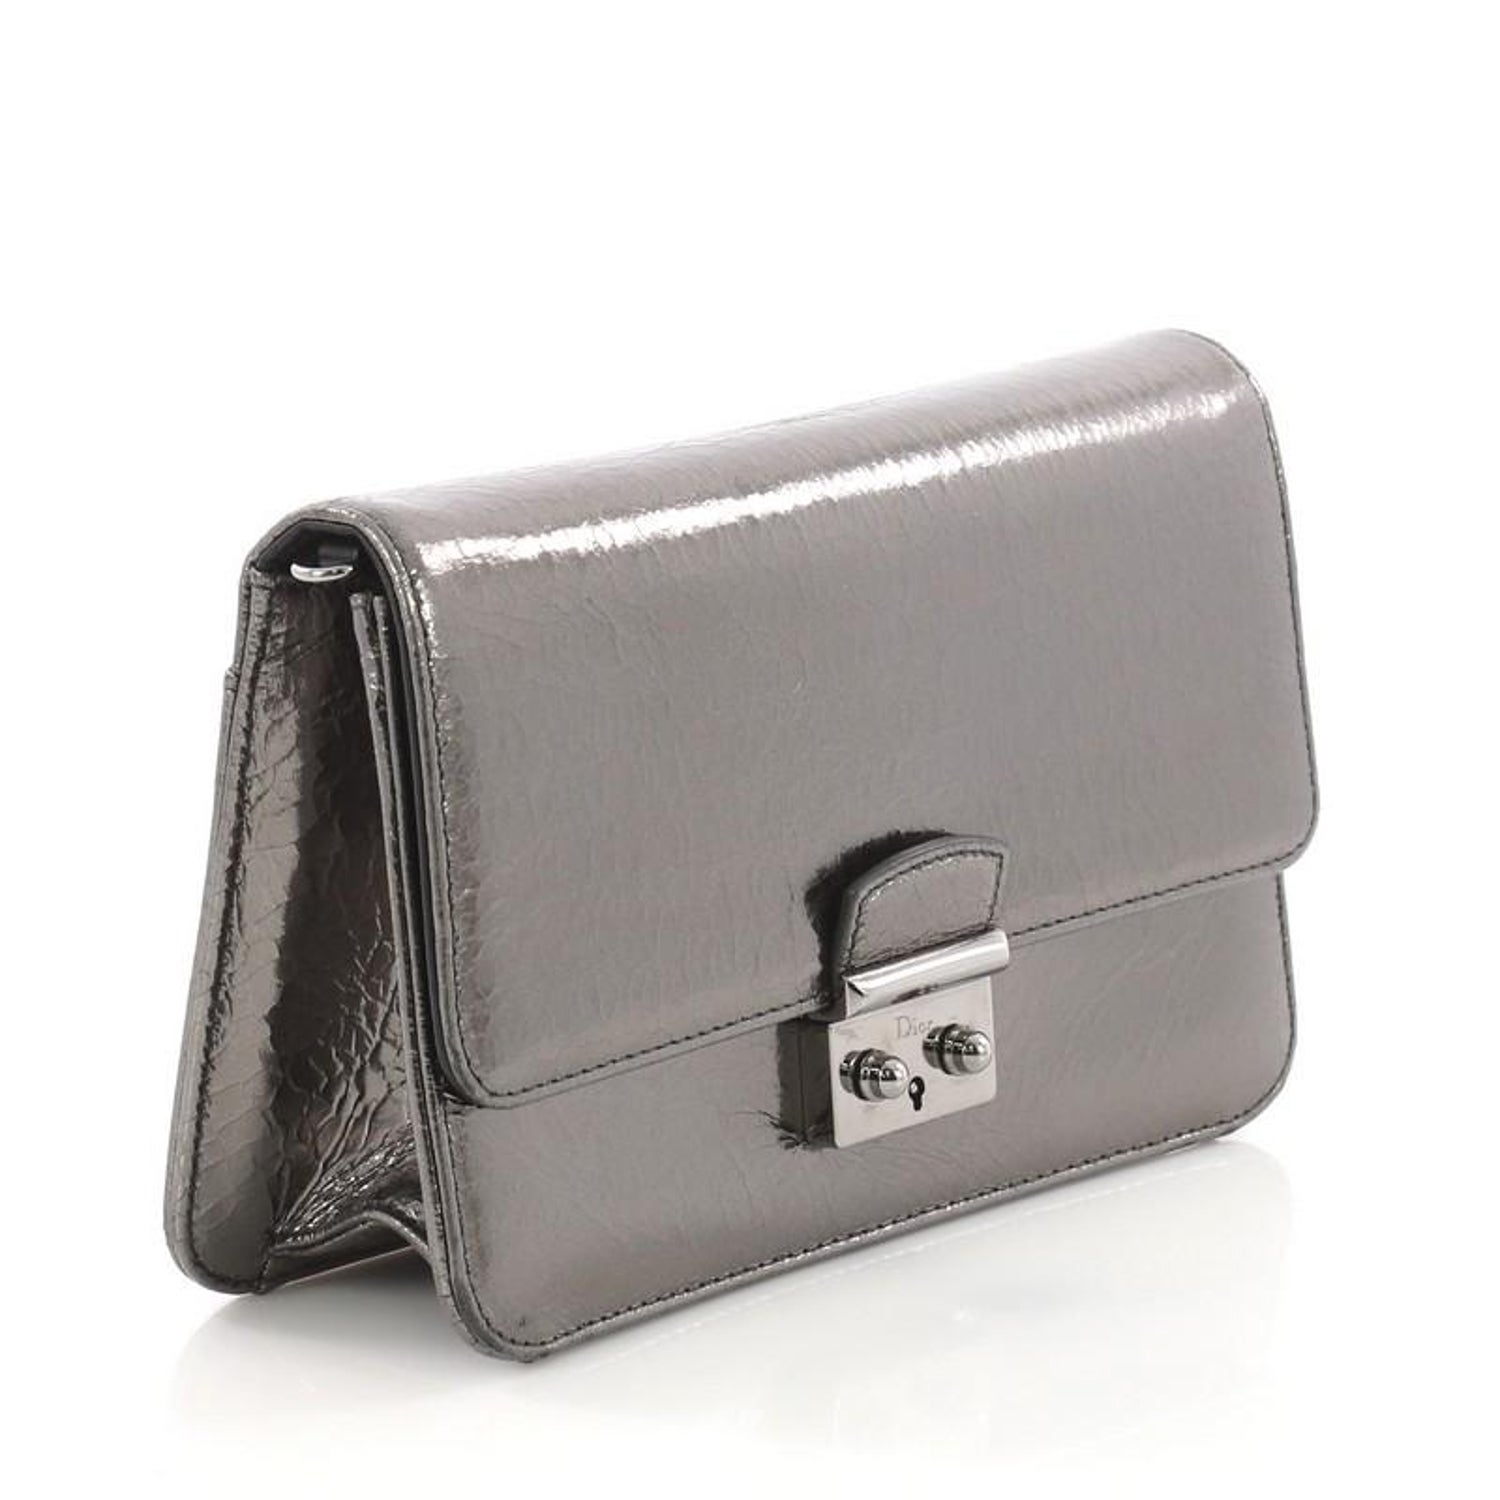 d1a609ef35 Christian Dior Miss Dior Promenade Pouch Crinkled Patent Large at 1stdibs